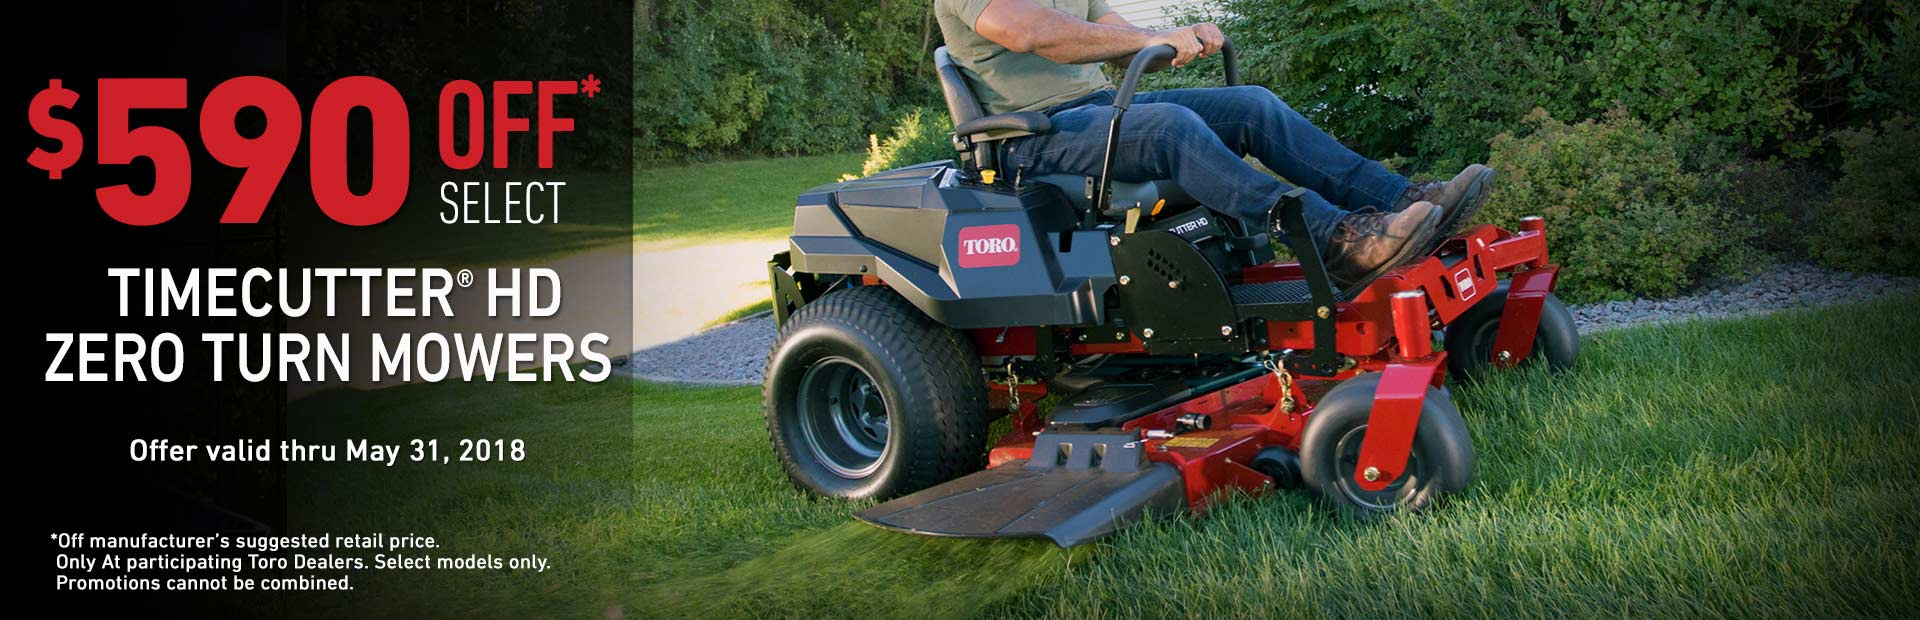 Toro: $590 MSRP off TimeCutter HD